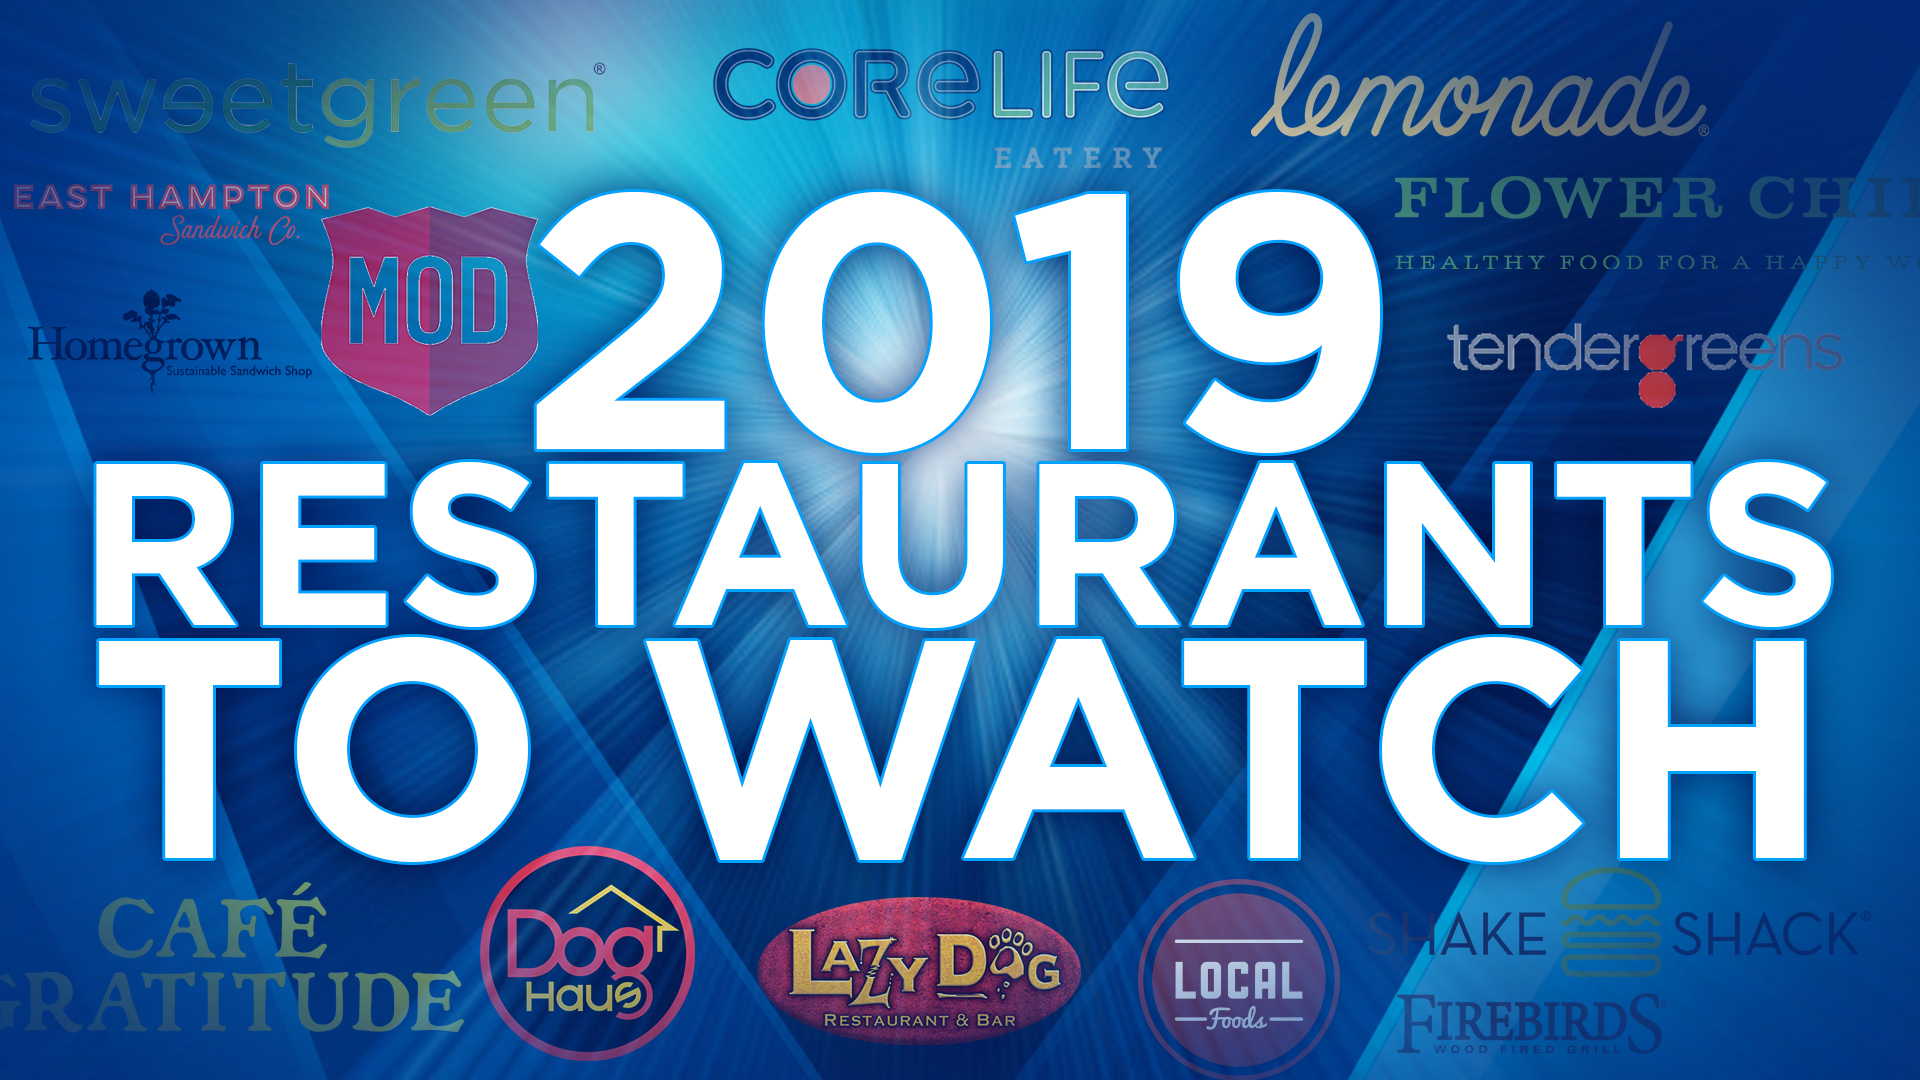 15 Restaurant Brands to Watch in 2019 — Foodable Network